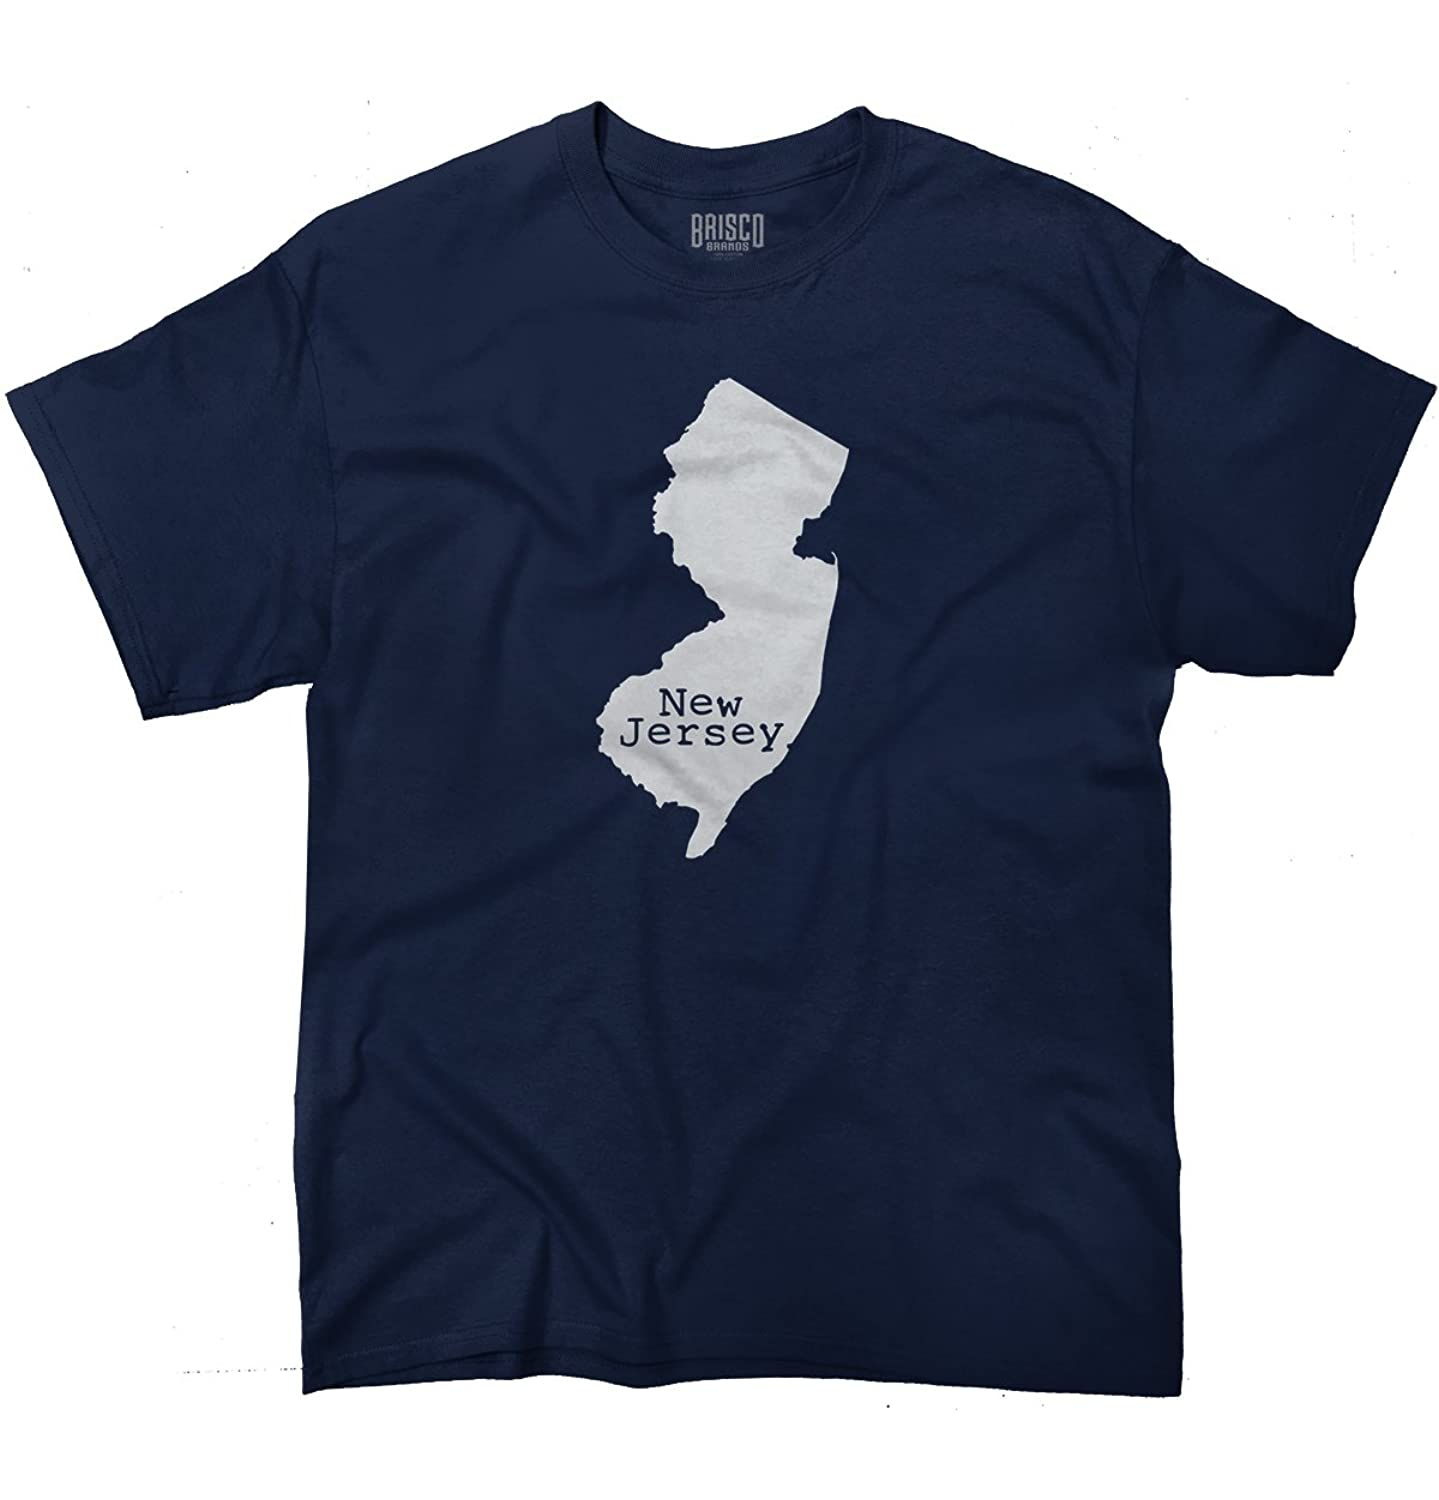 New Jersey State Shirt State Pride USA T Novelty Gift Ideas T-Shirt Tee